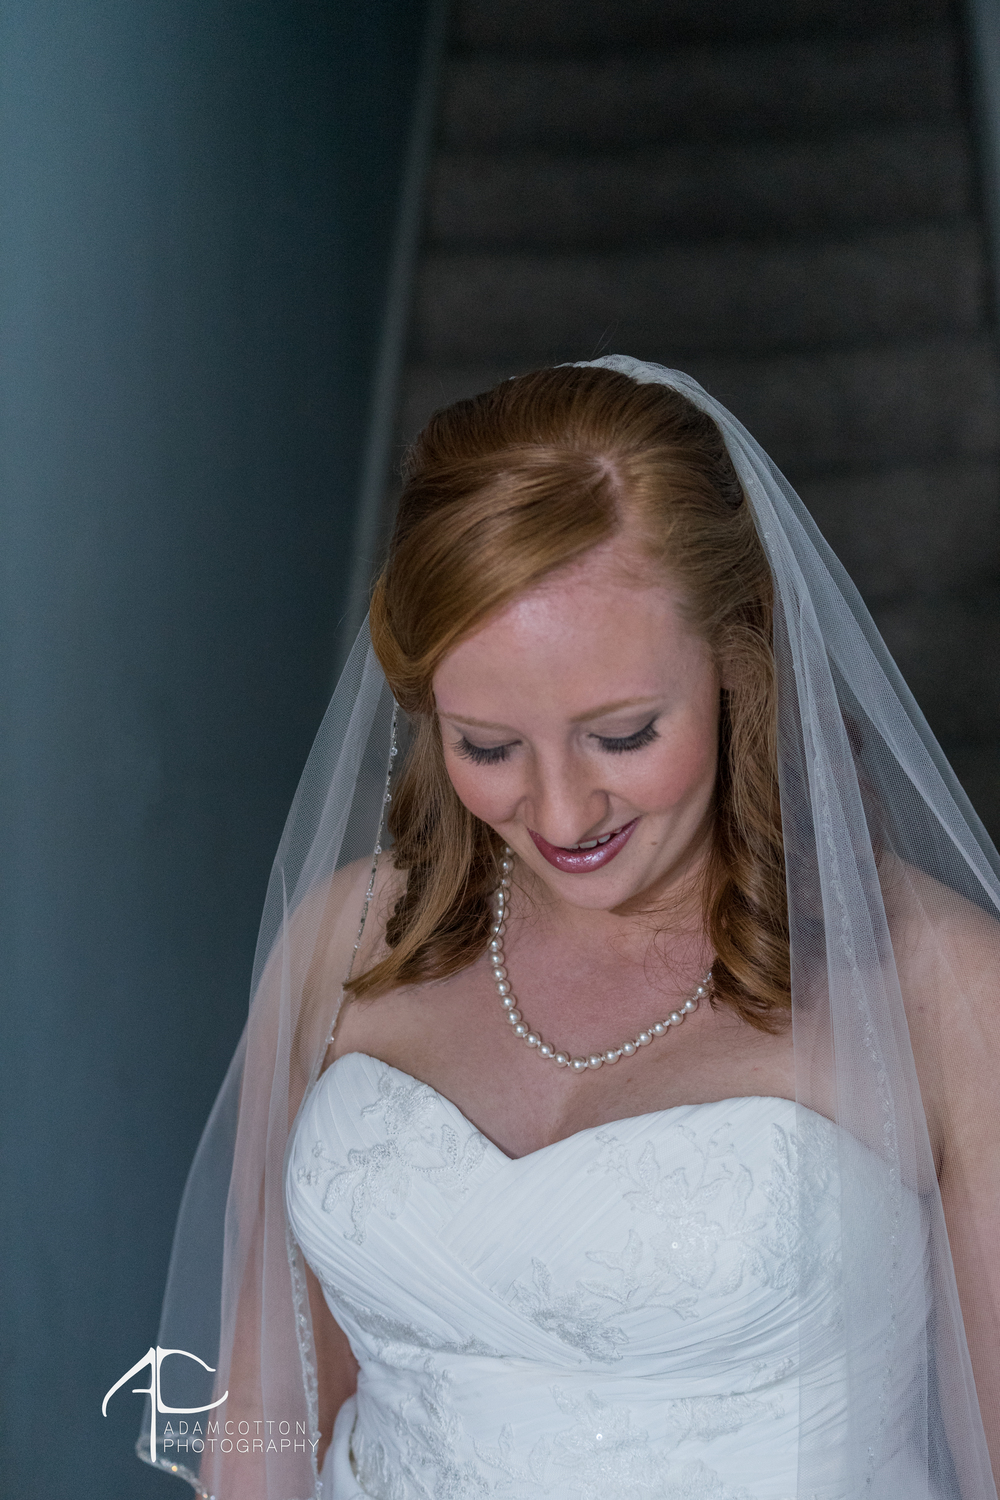 beautiful image of bride coming down stairs by wedding photographer adam cotton